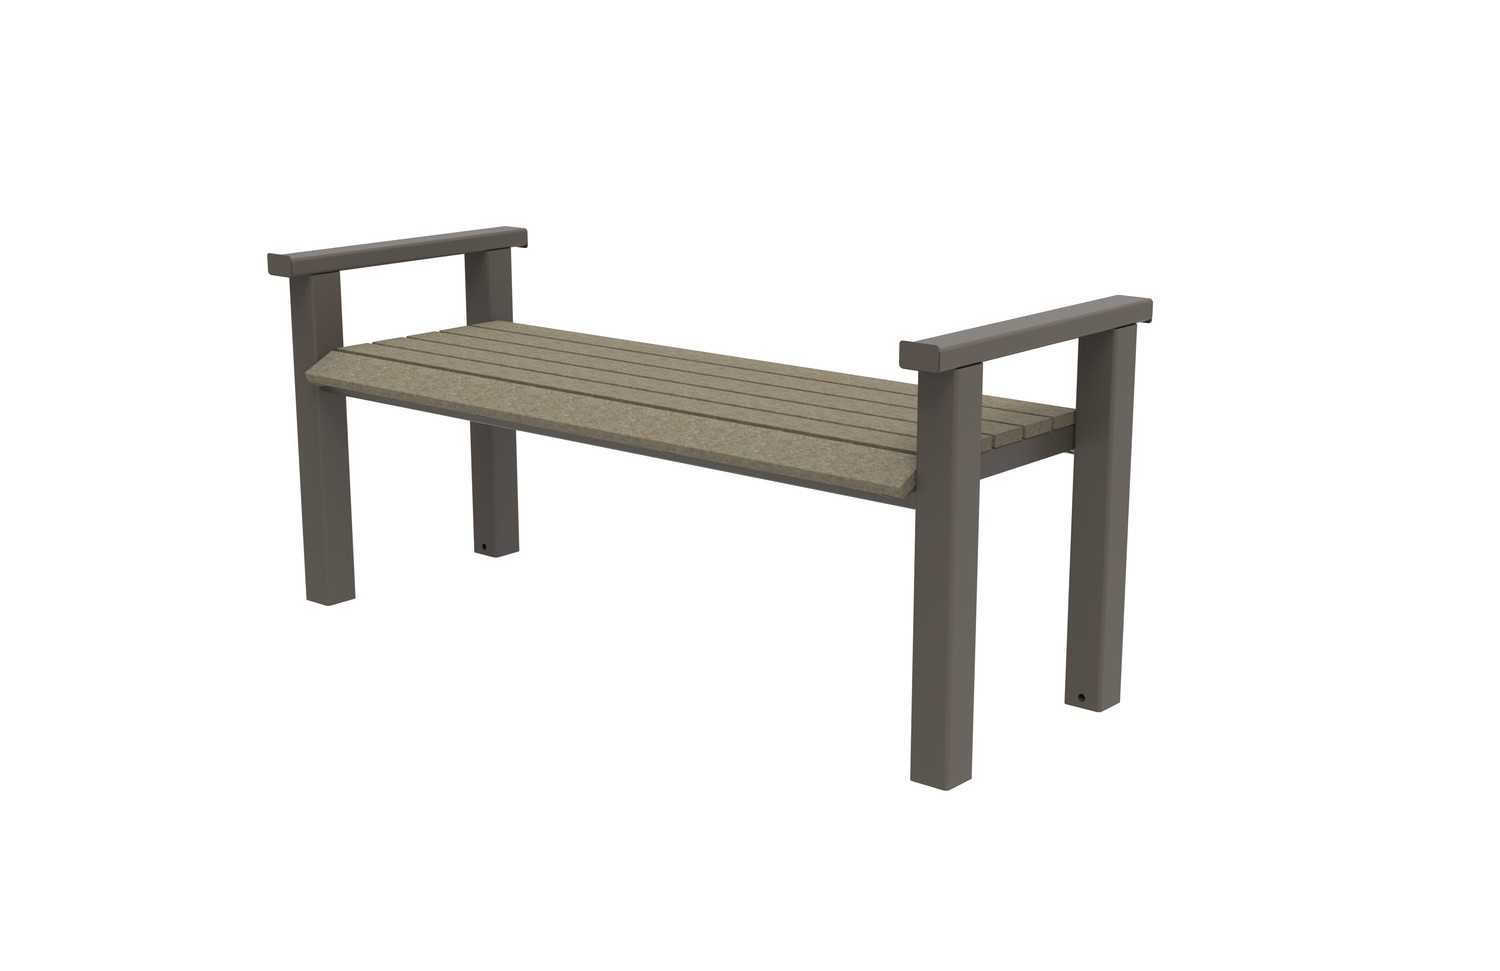 Awe Inspiring Wind River Backless Bench Beatyapartments Chair Design Images Beatyapartmentscom